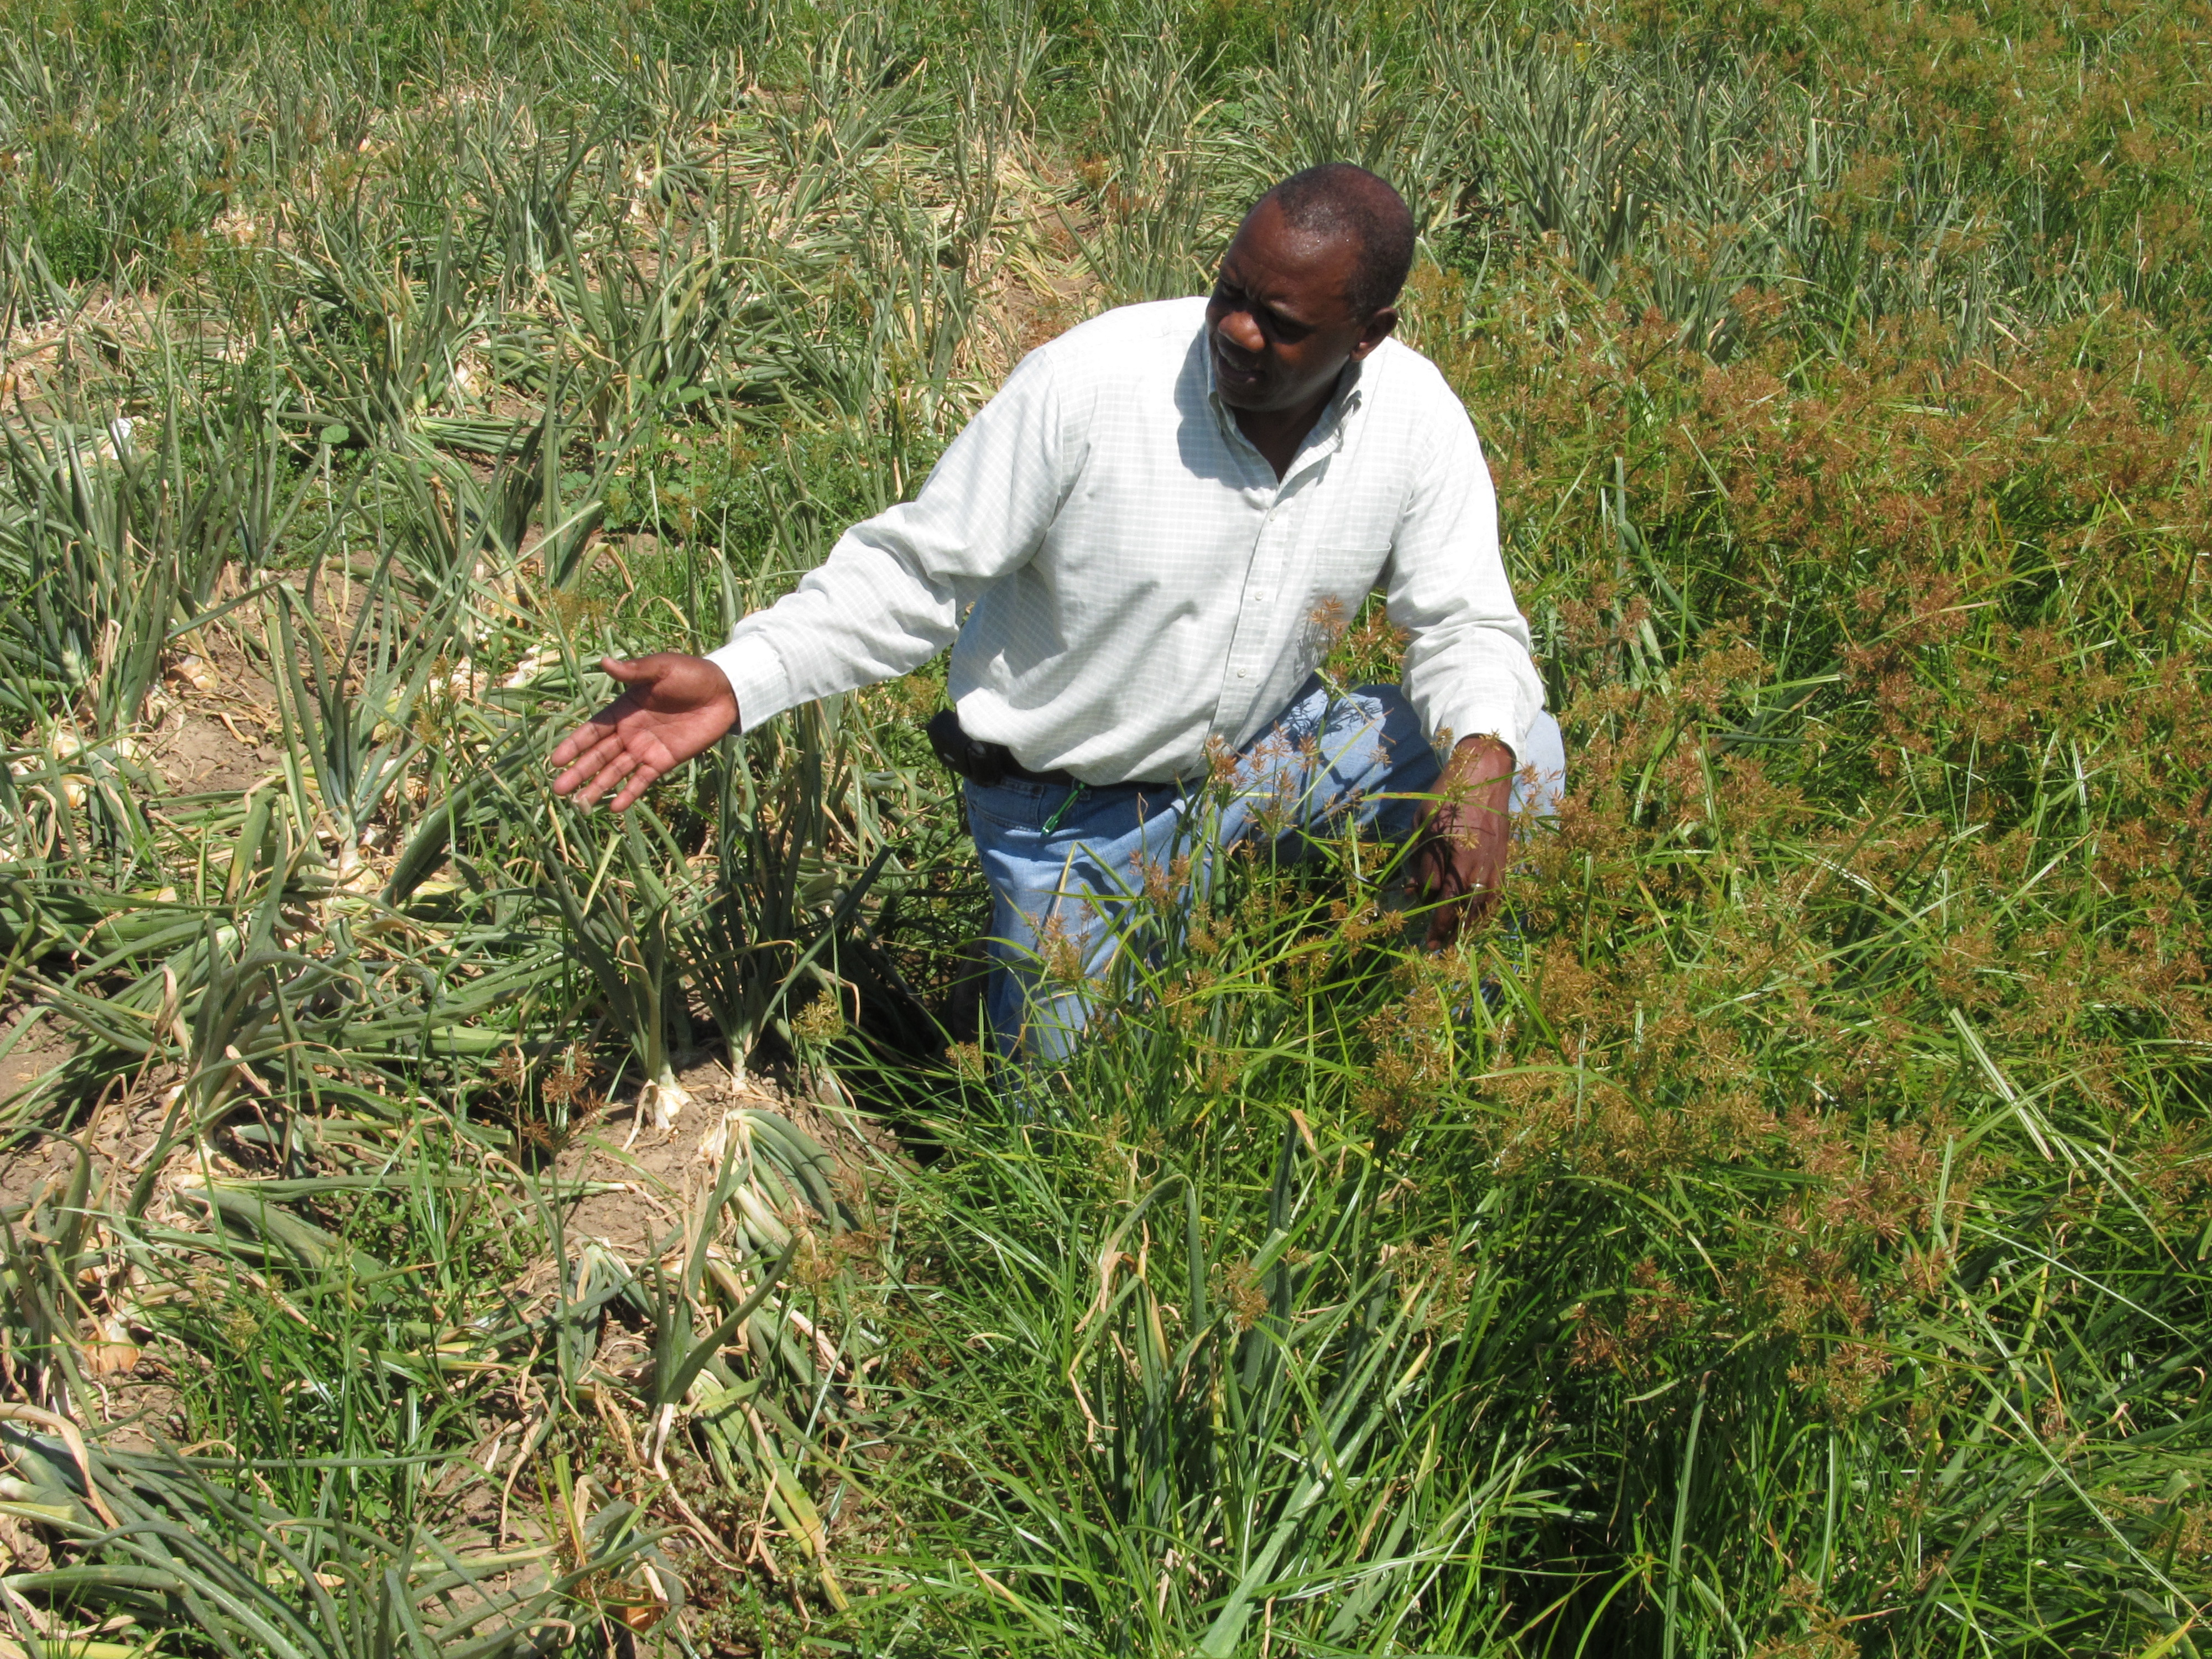 Joel Felix, Associate Professor, Displaying the Yellow Nutsedge Variety Trial at the Malheur Experiment Station.